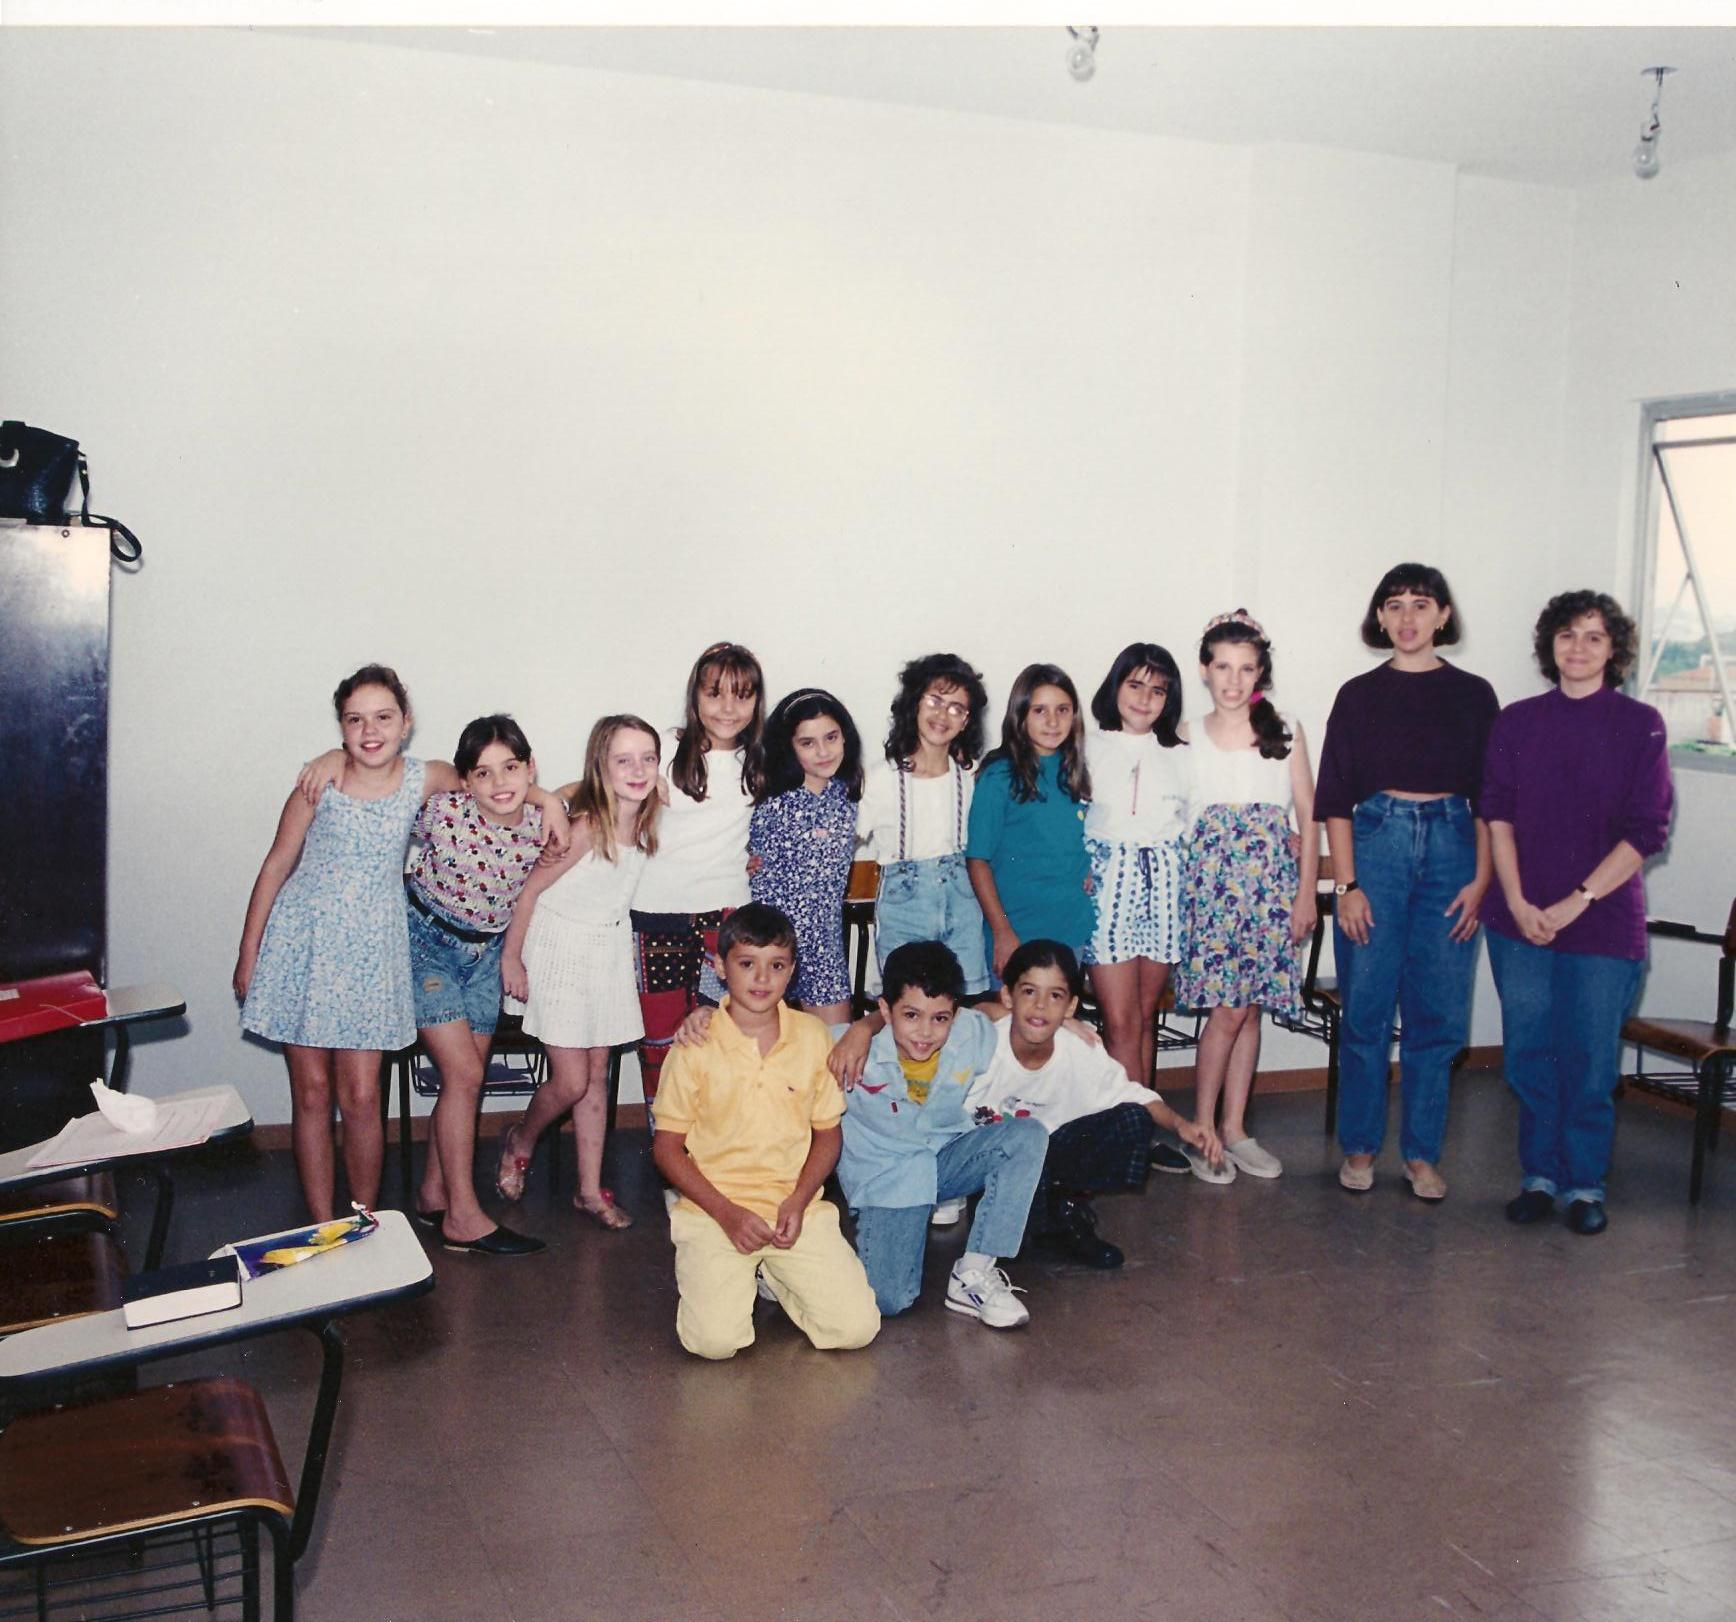 1995 Escola Dominical - Classe Davi